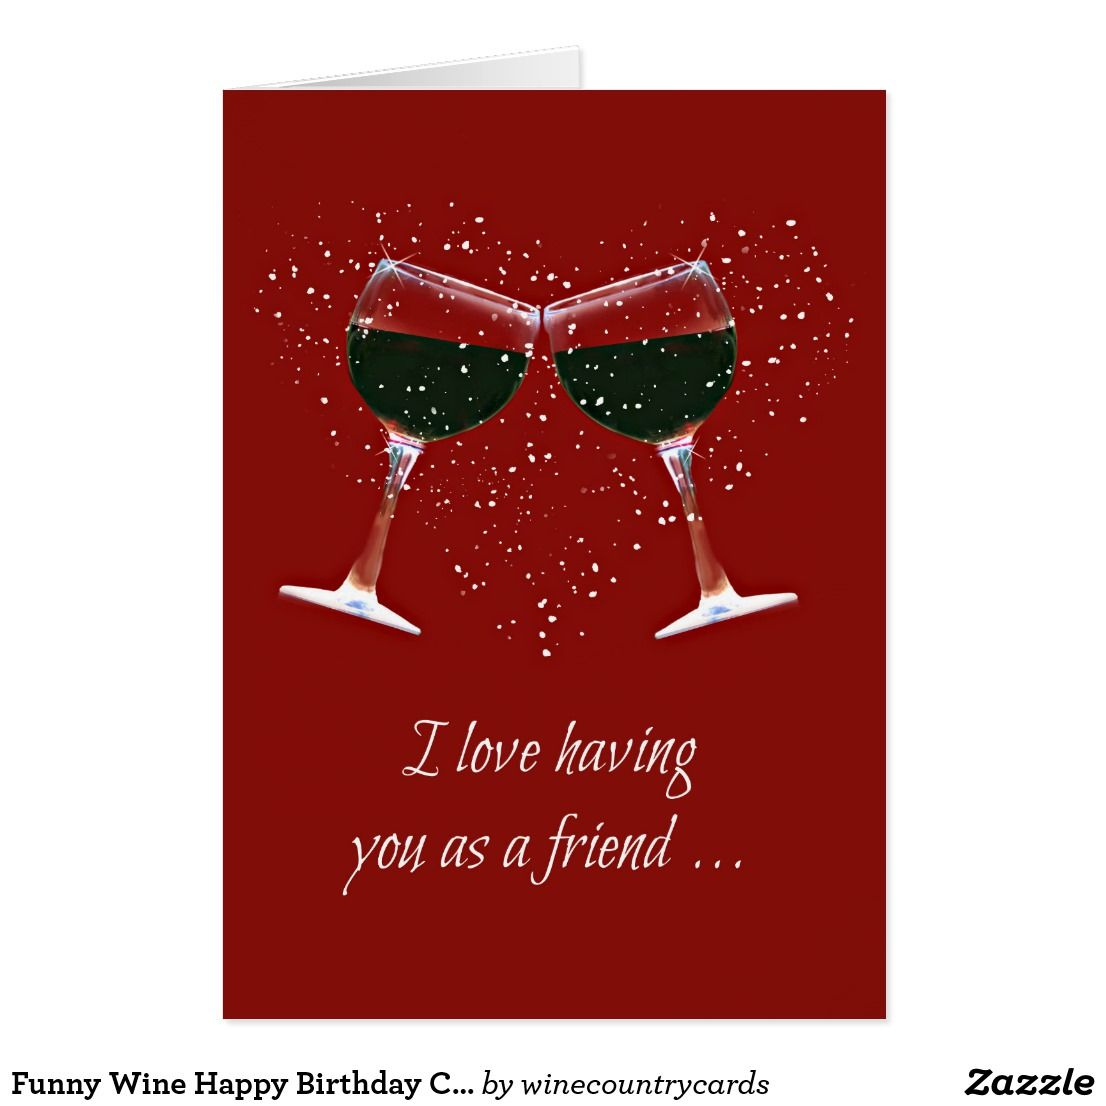 Funny Wine Happy Birthday Card For Friend Zazzle Com Birthday Cards For Friends Happy Mother S Day Card Happy Valentines Day Card